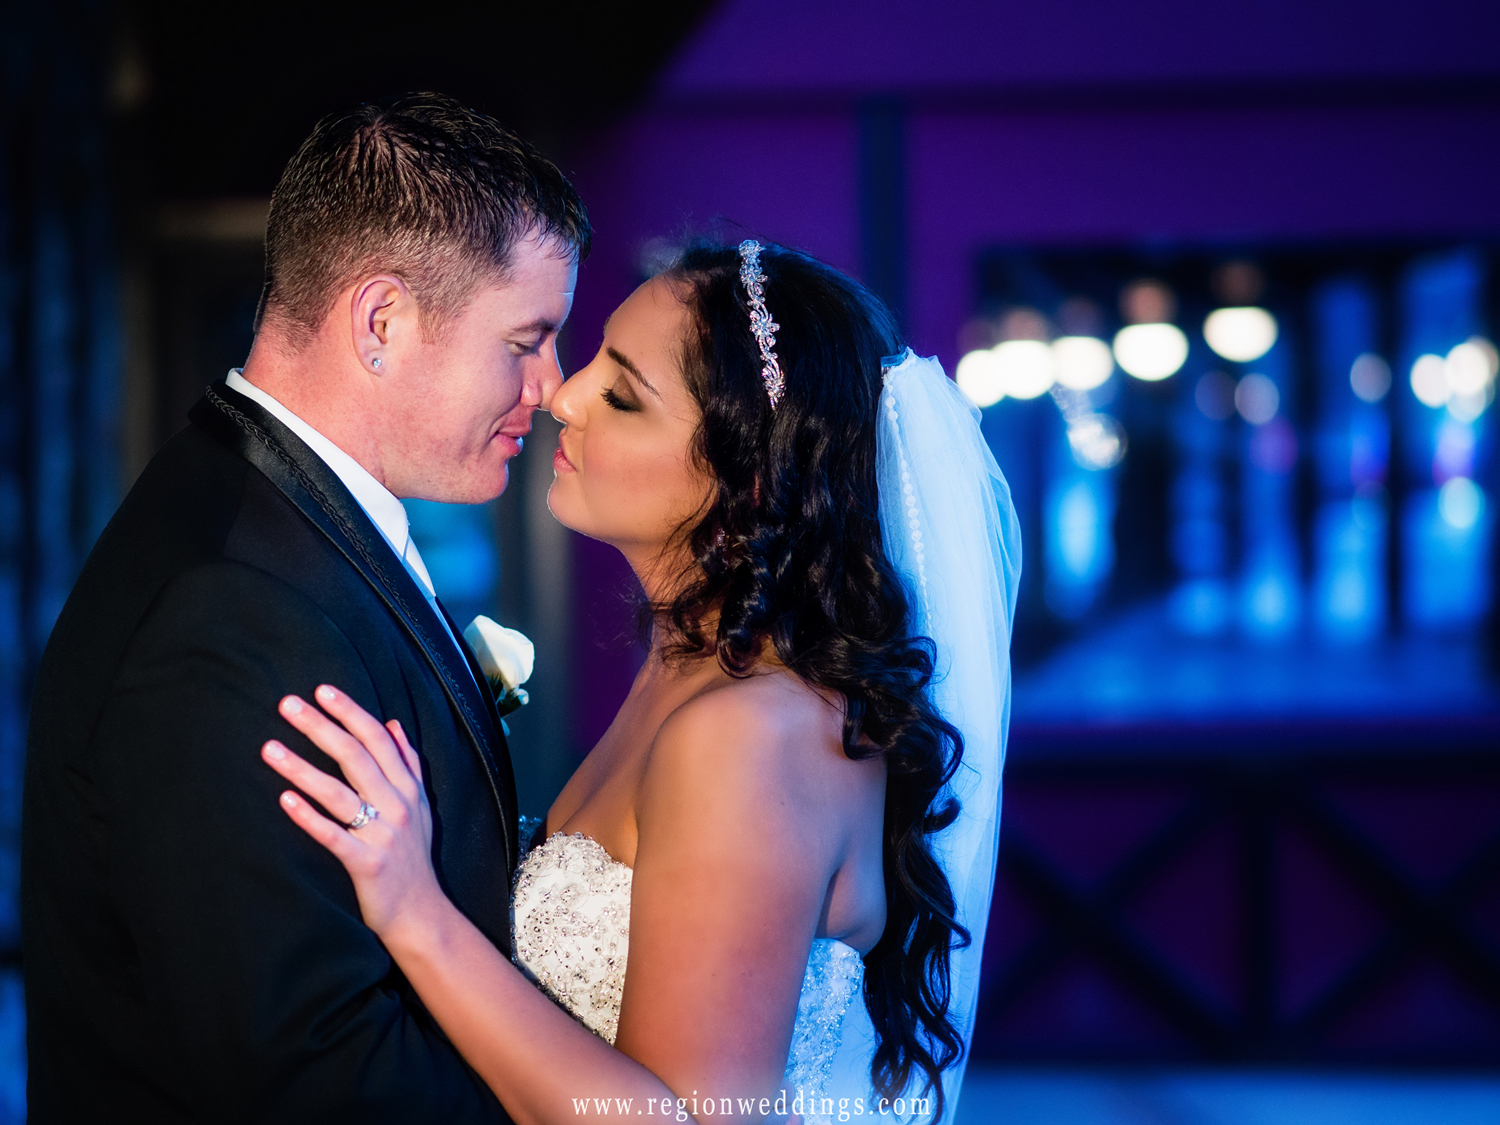 A night time wedding photo in downtown Highland with the bride and groom snuggling close.